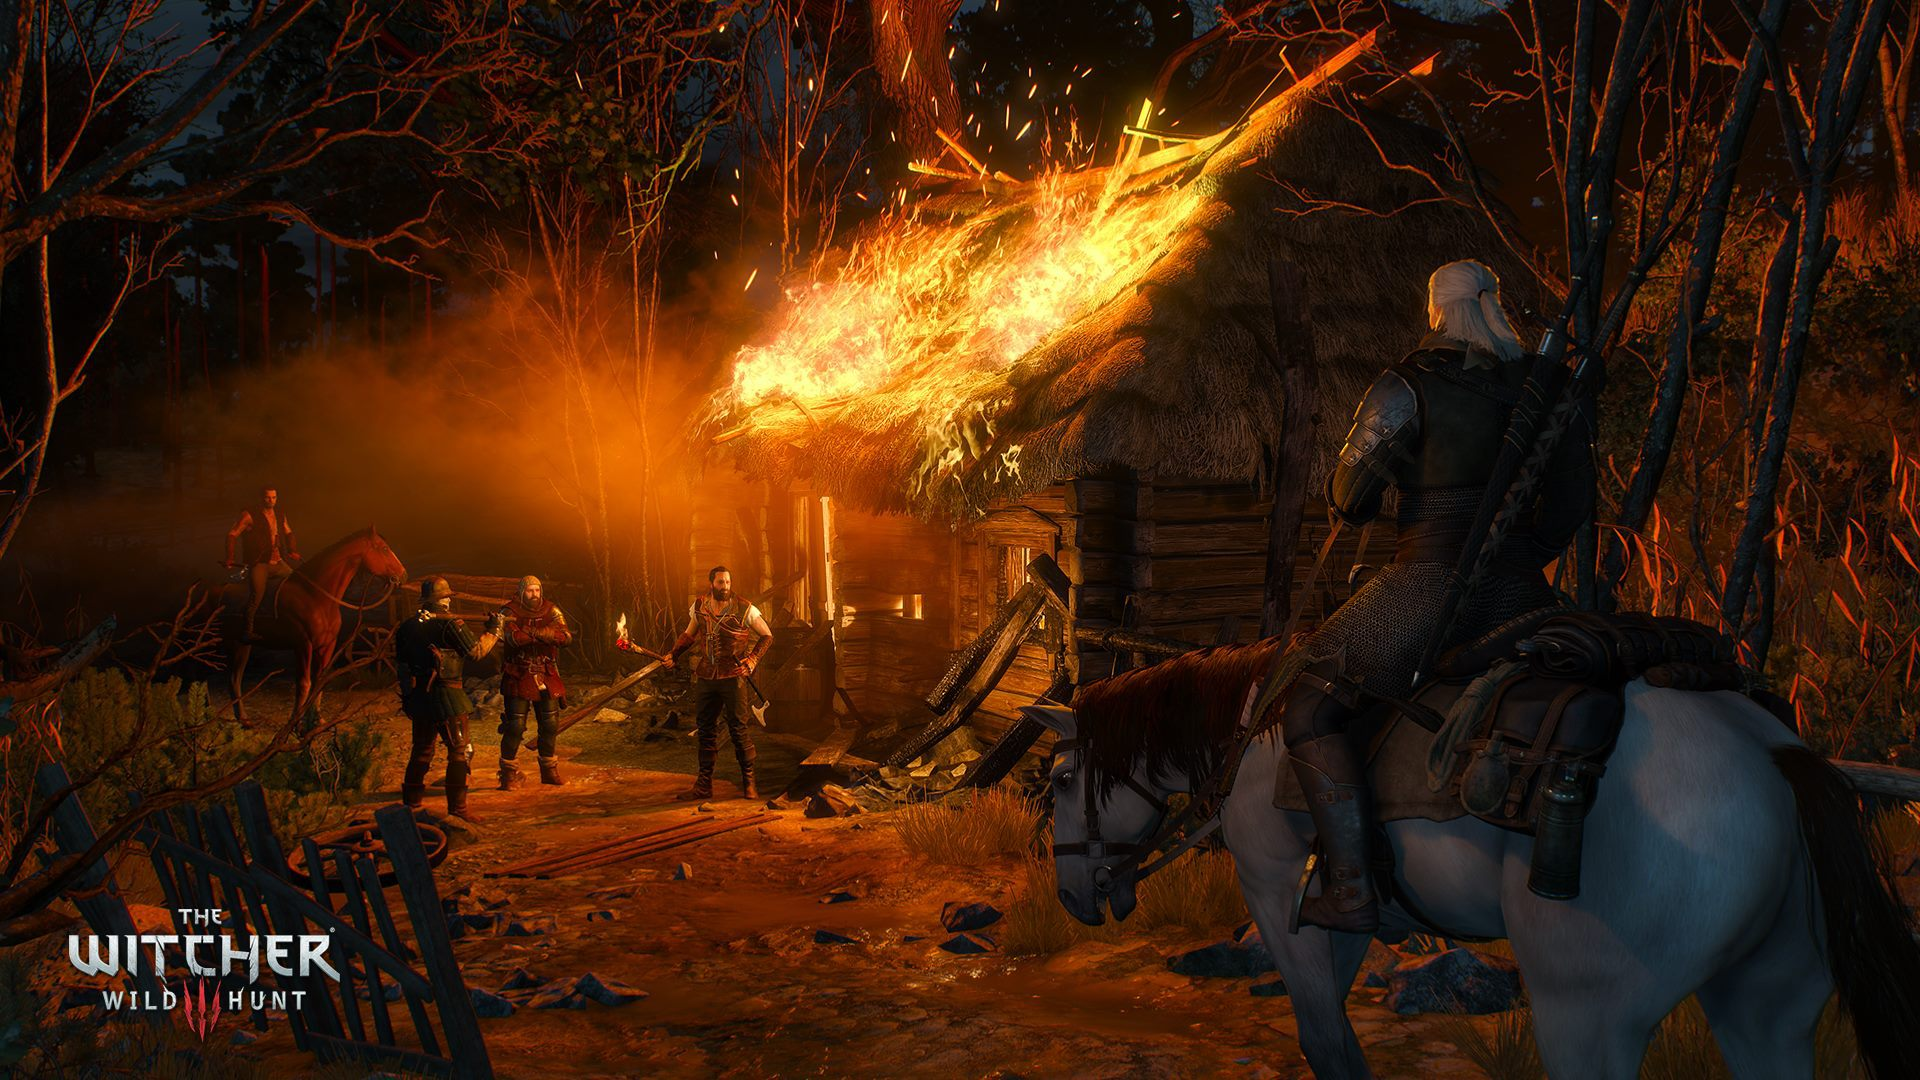 The Witcher 3 Wild Hunt Wallpapers And Backgrounds